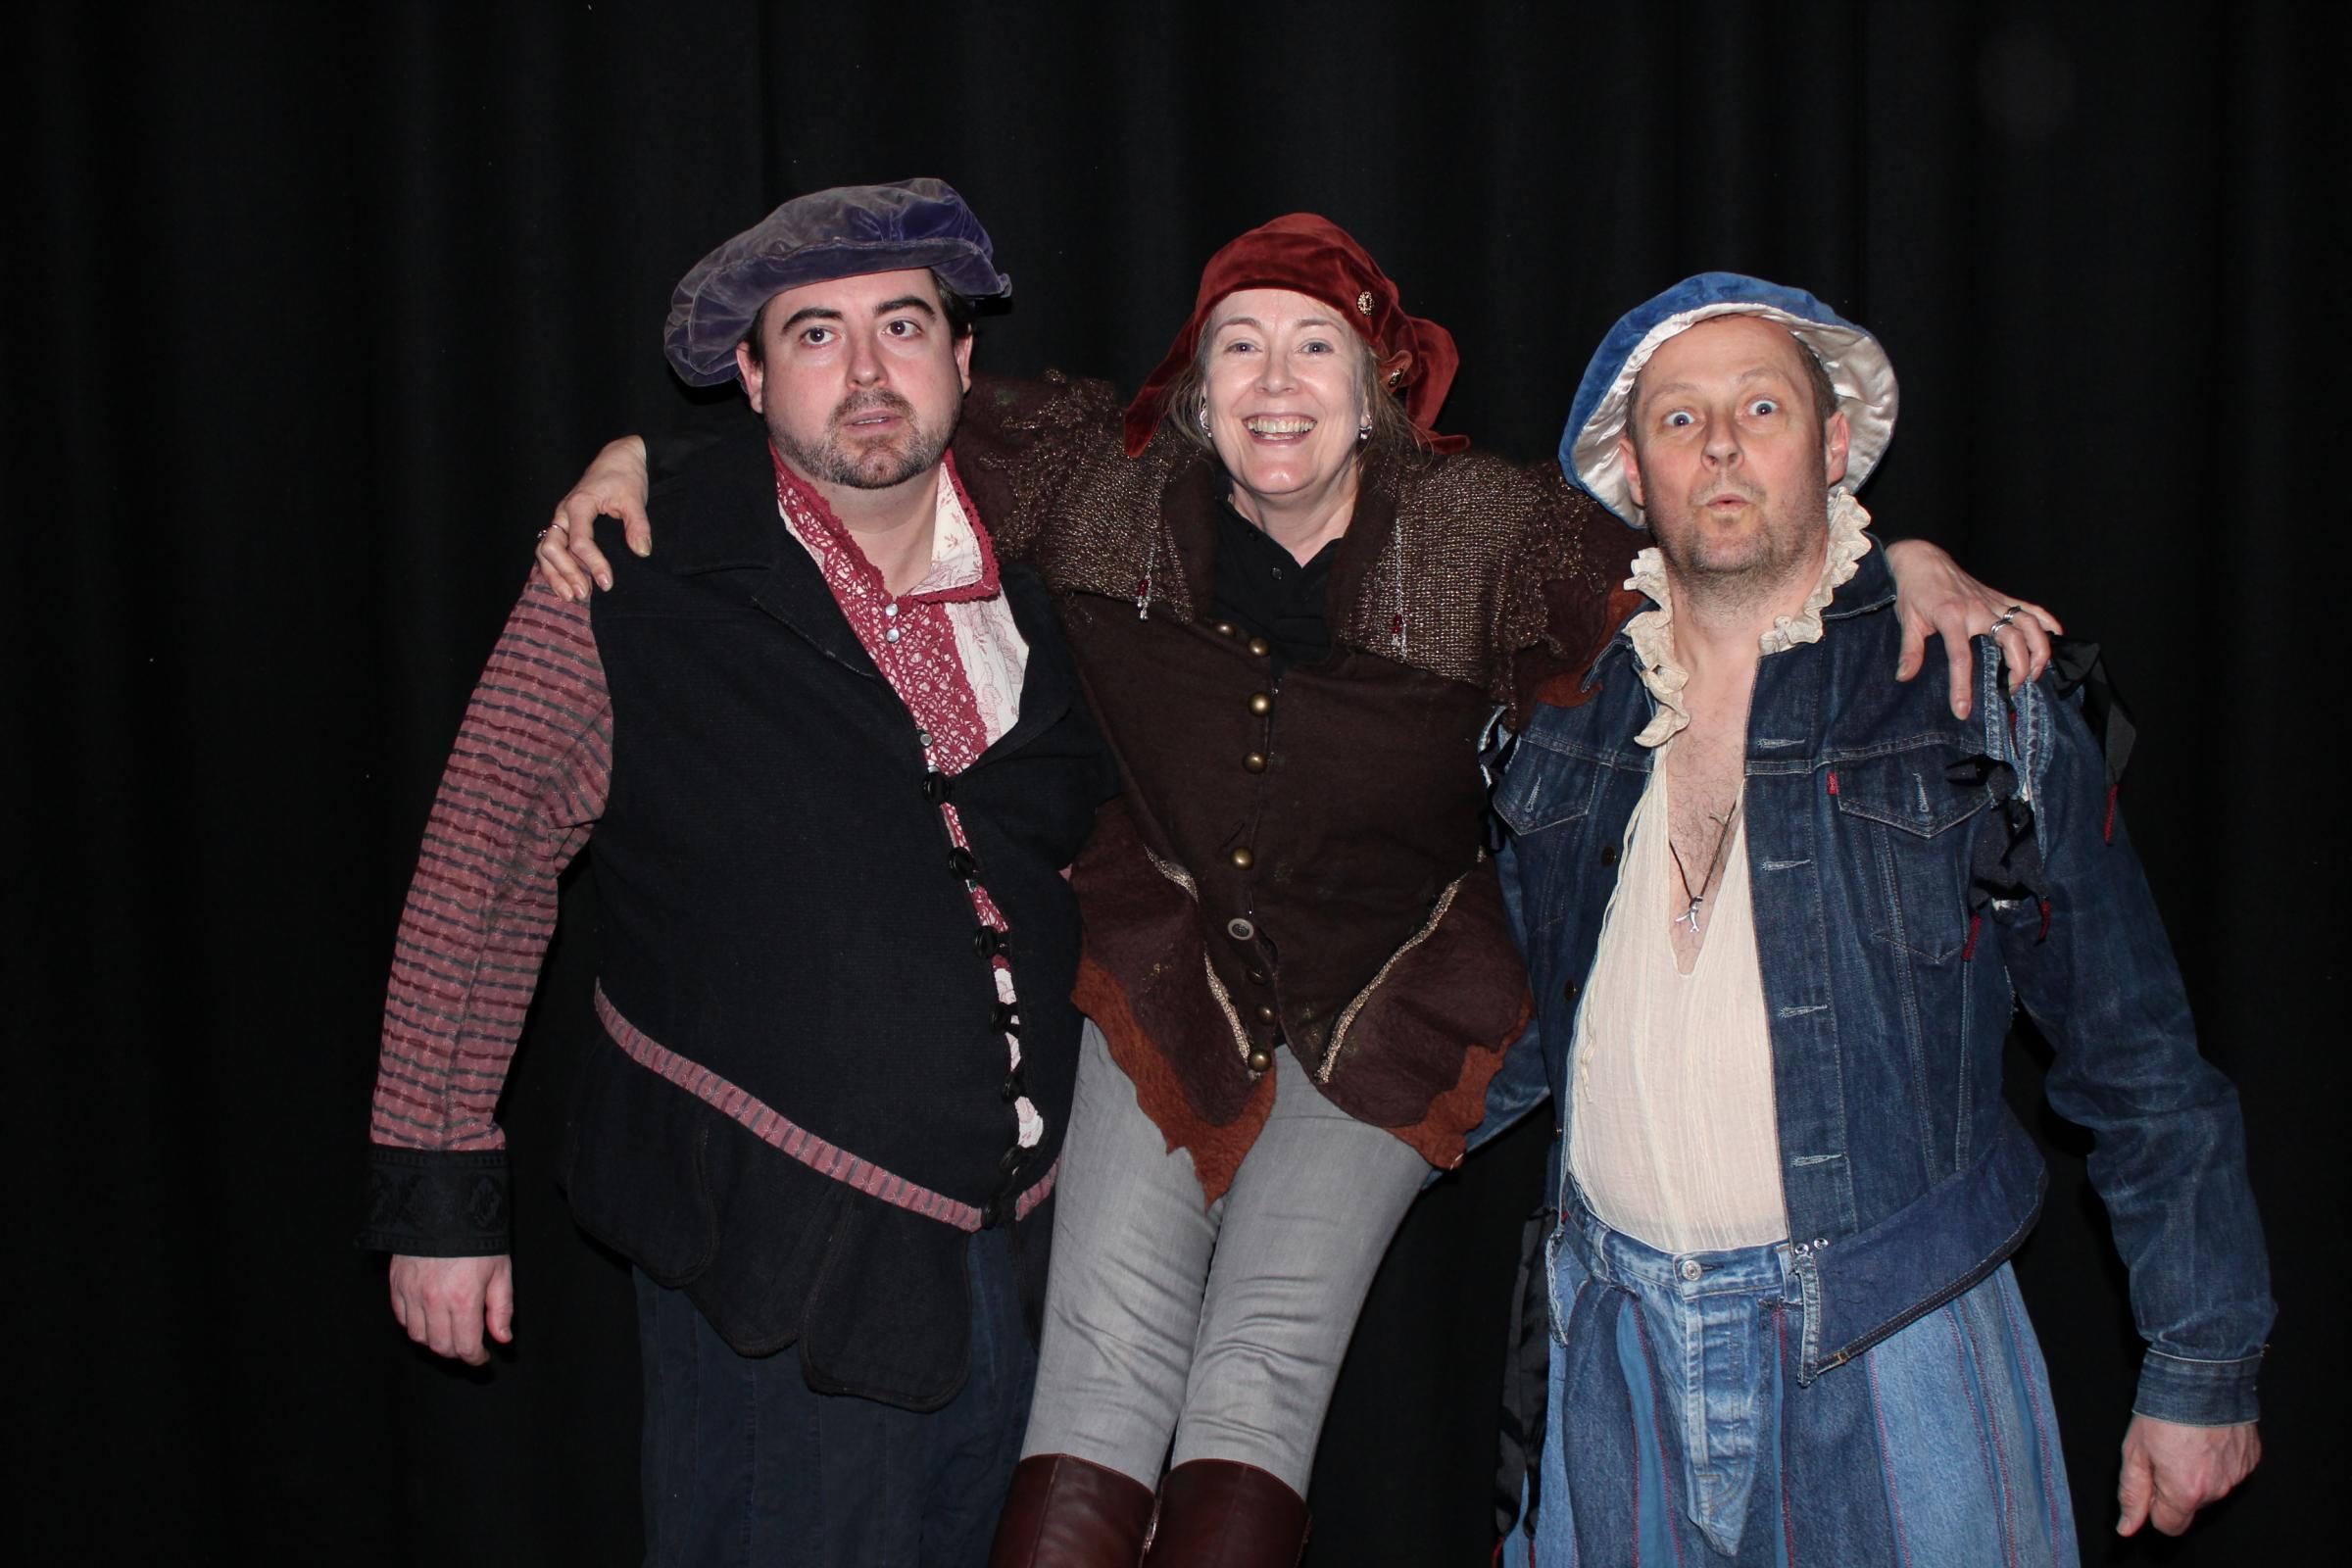 The Sinodun Players cast for Rosencrantz and Guildenstern are Dead. Left to right, Tom Richards (Guildenstern), Rebecca Cleverley (a Tragedian) and Wil Lidbetter (Rosencrantz).